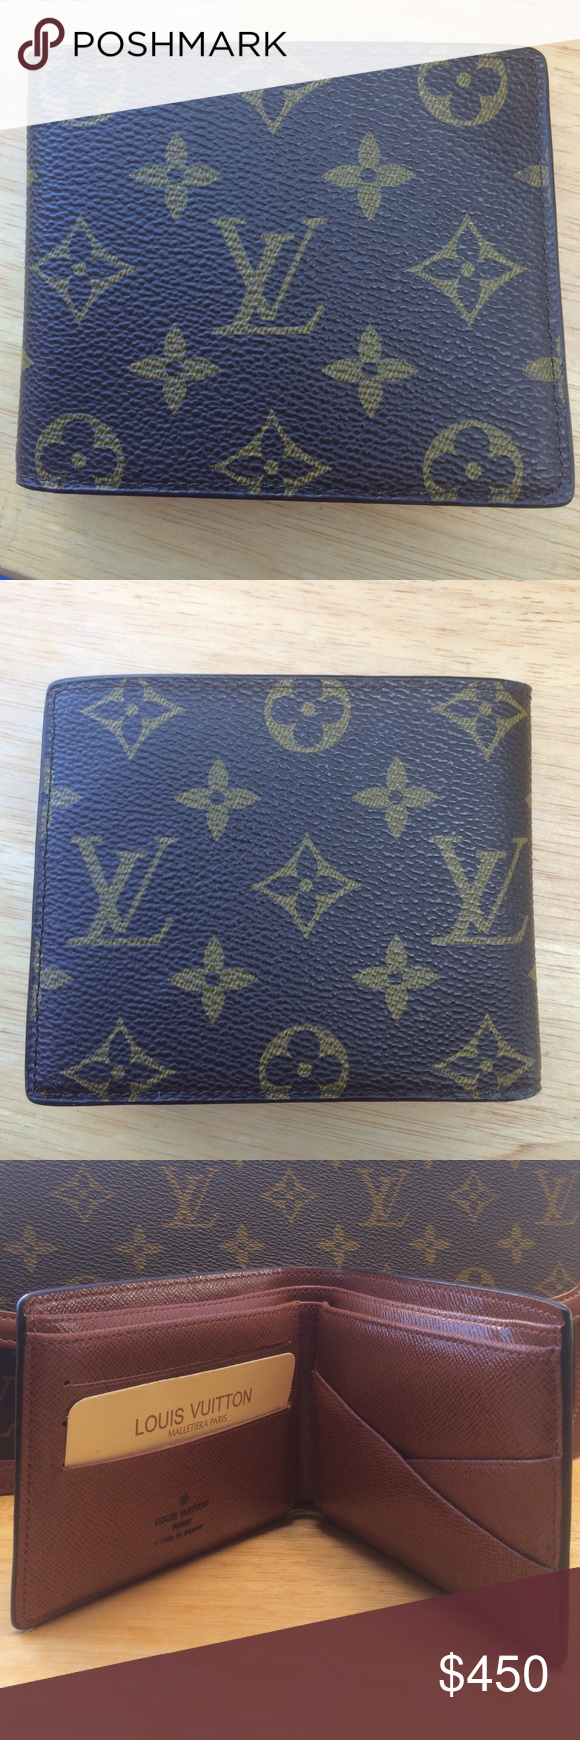 """Louis Vuitton Man's Wallet Gift to my Friends Father that he has never used.  Bought in Paris in 1990s by his Mother.  Found it in his sock drawer...he said """"sell it if you can...I never use it..."""". So here it is...Box and dust cover are long gone but I know it is the real deal.  It's still in excellent, like new condition!!! Louis Vuitton Bags Wallets"""